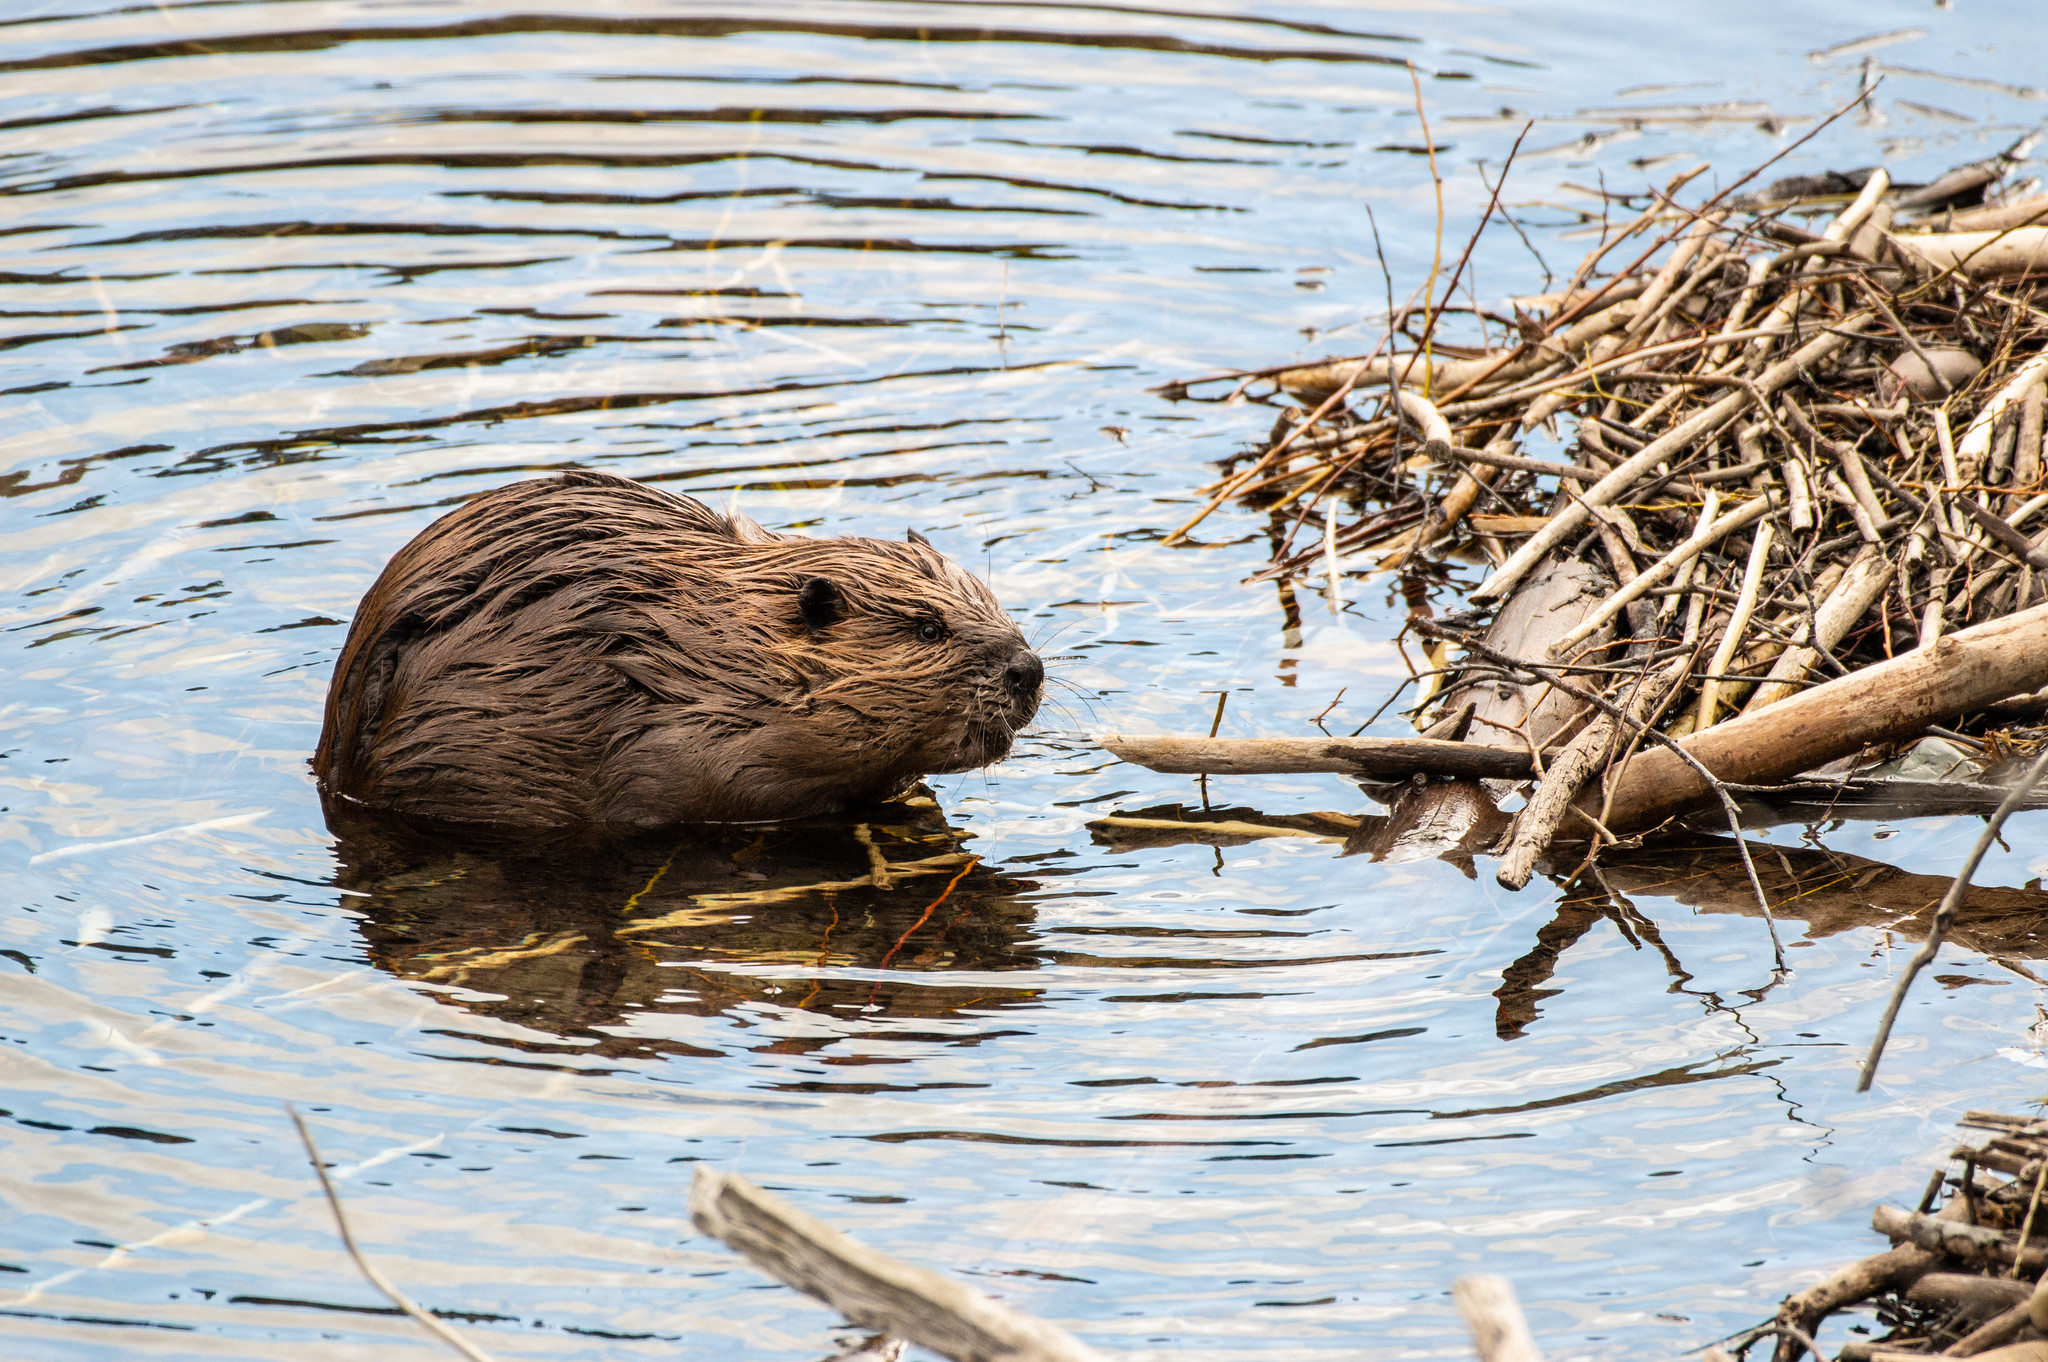 A beaver floats in water near a pile of branches and sticks.